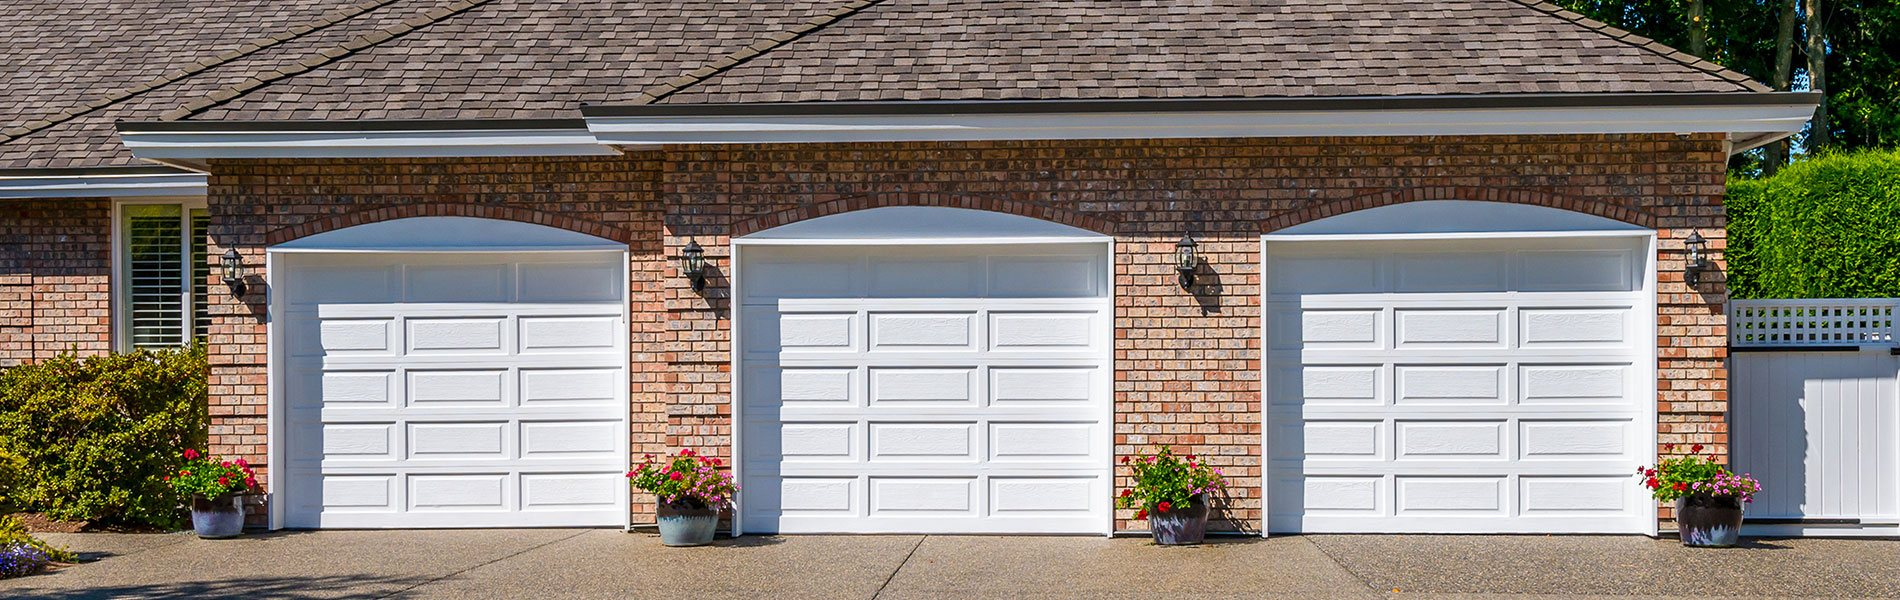 Galaxy Garage Door Service, Burbank, CA 818-658-1102